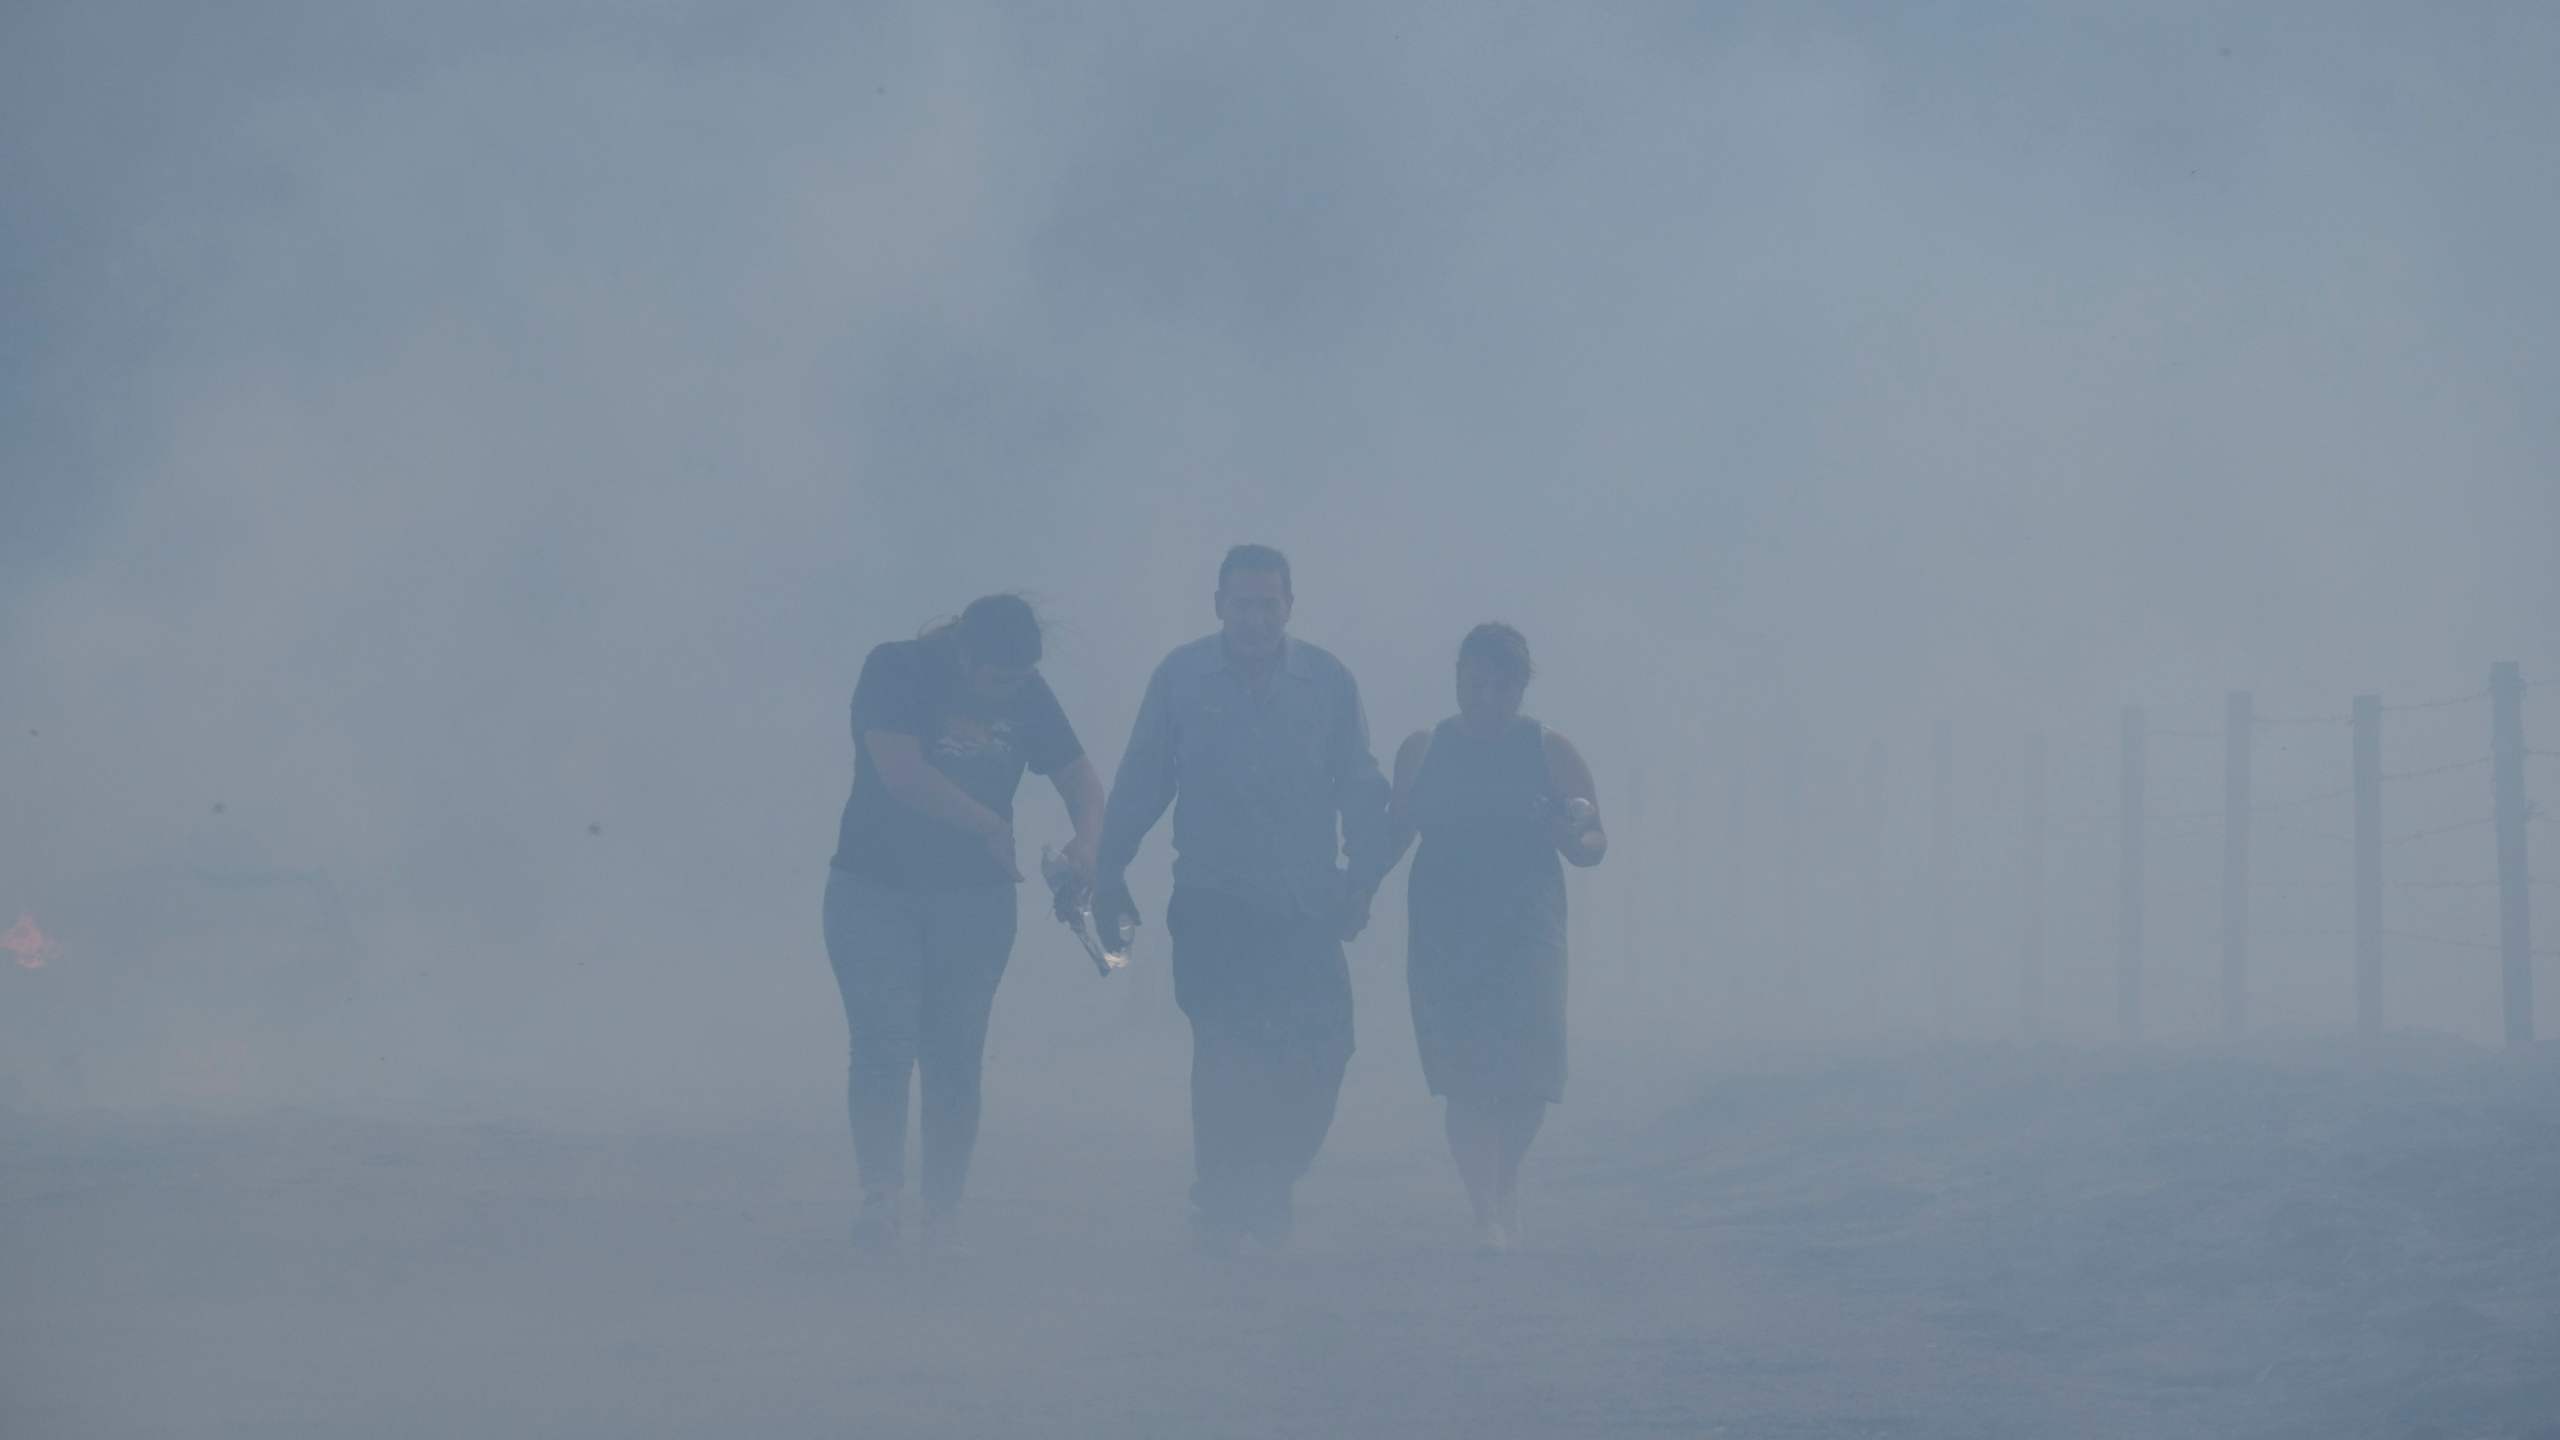 Homeowners Jose Lamas, center, his wife, Maria Covarrubias, right, and his daughter Astrid Covarrubias walk through the smoke after visiting their burned-out home from the South Fire in Lytle Creek, San Bernardino County, on Aug. 25, 2021. (Ringo H.W. Chiu / Associated Press)